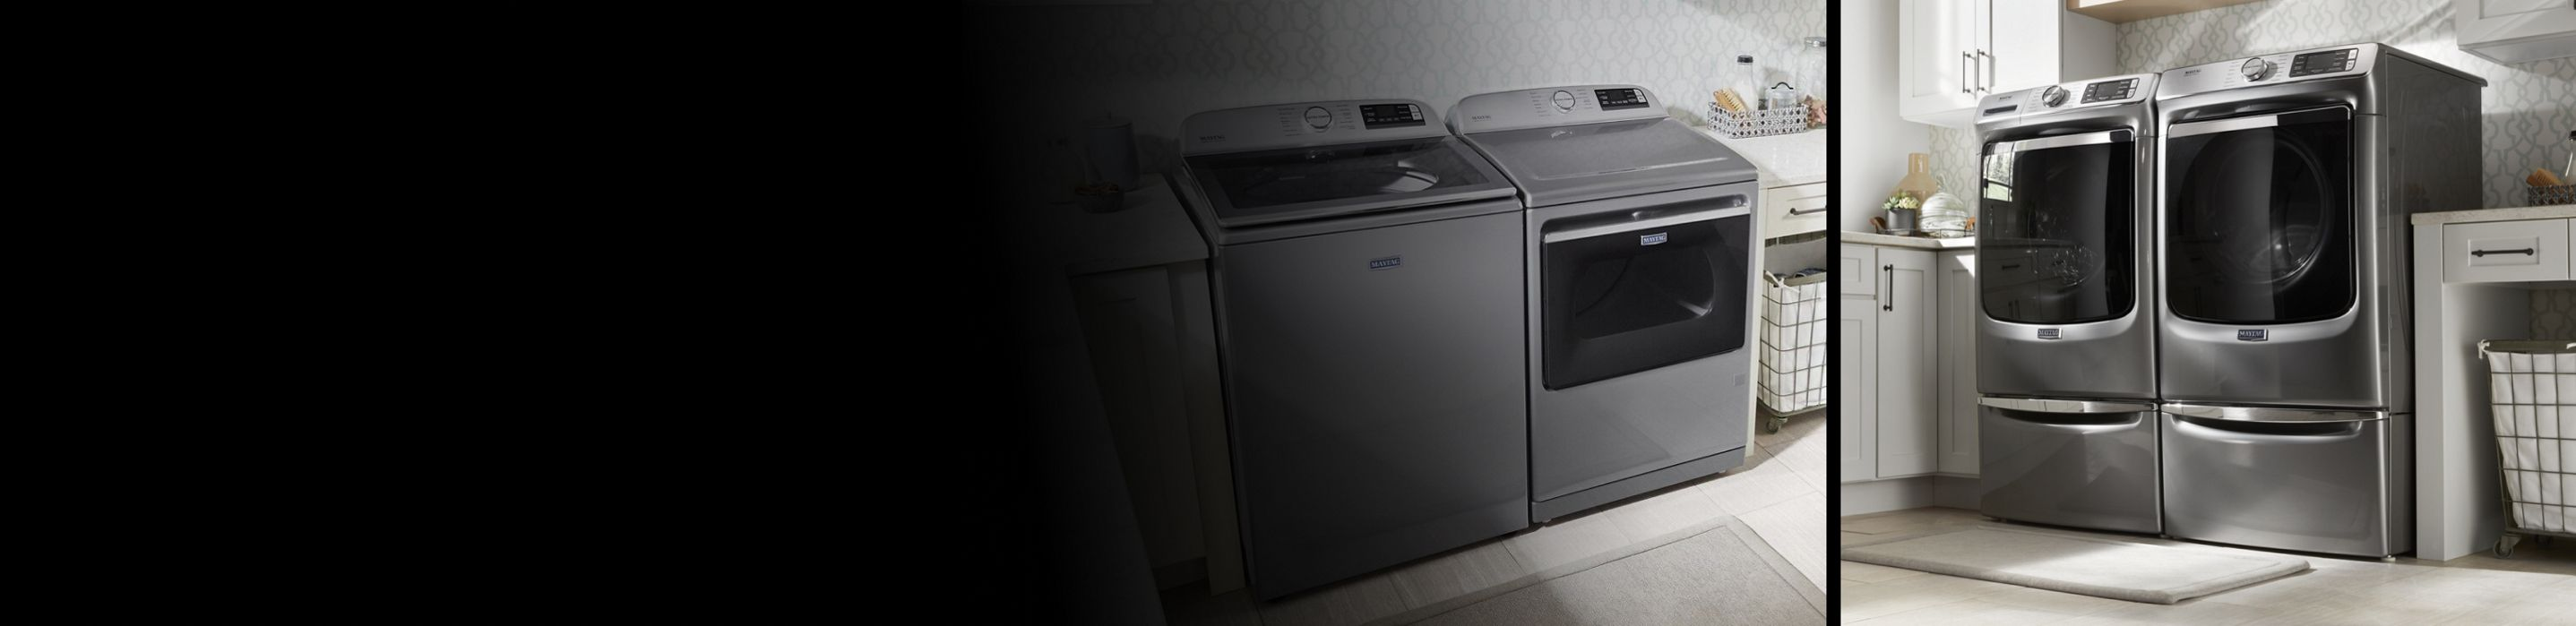 Maytag® top load and front load laundry pairs